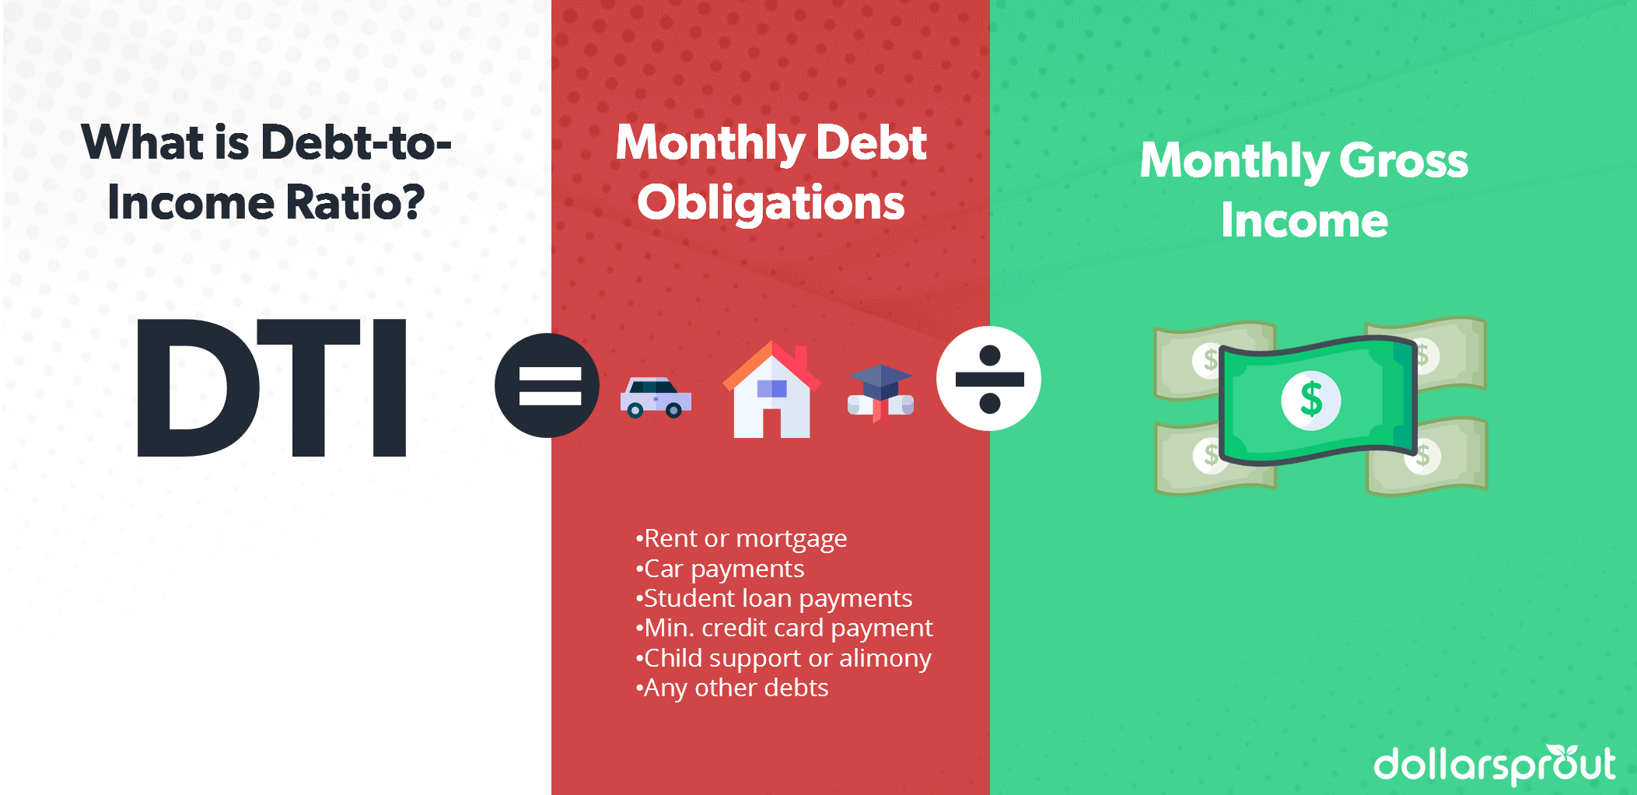 Infographic showing how the debt to income ratio is calculated